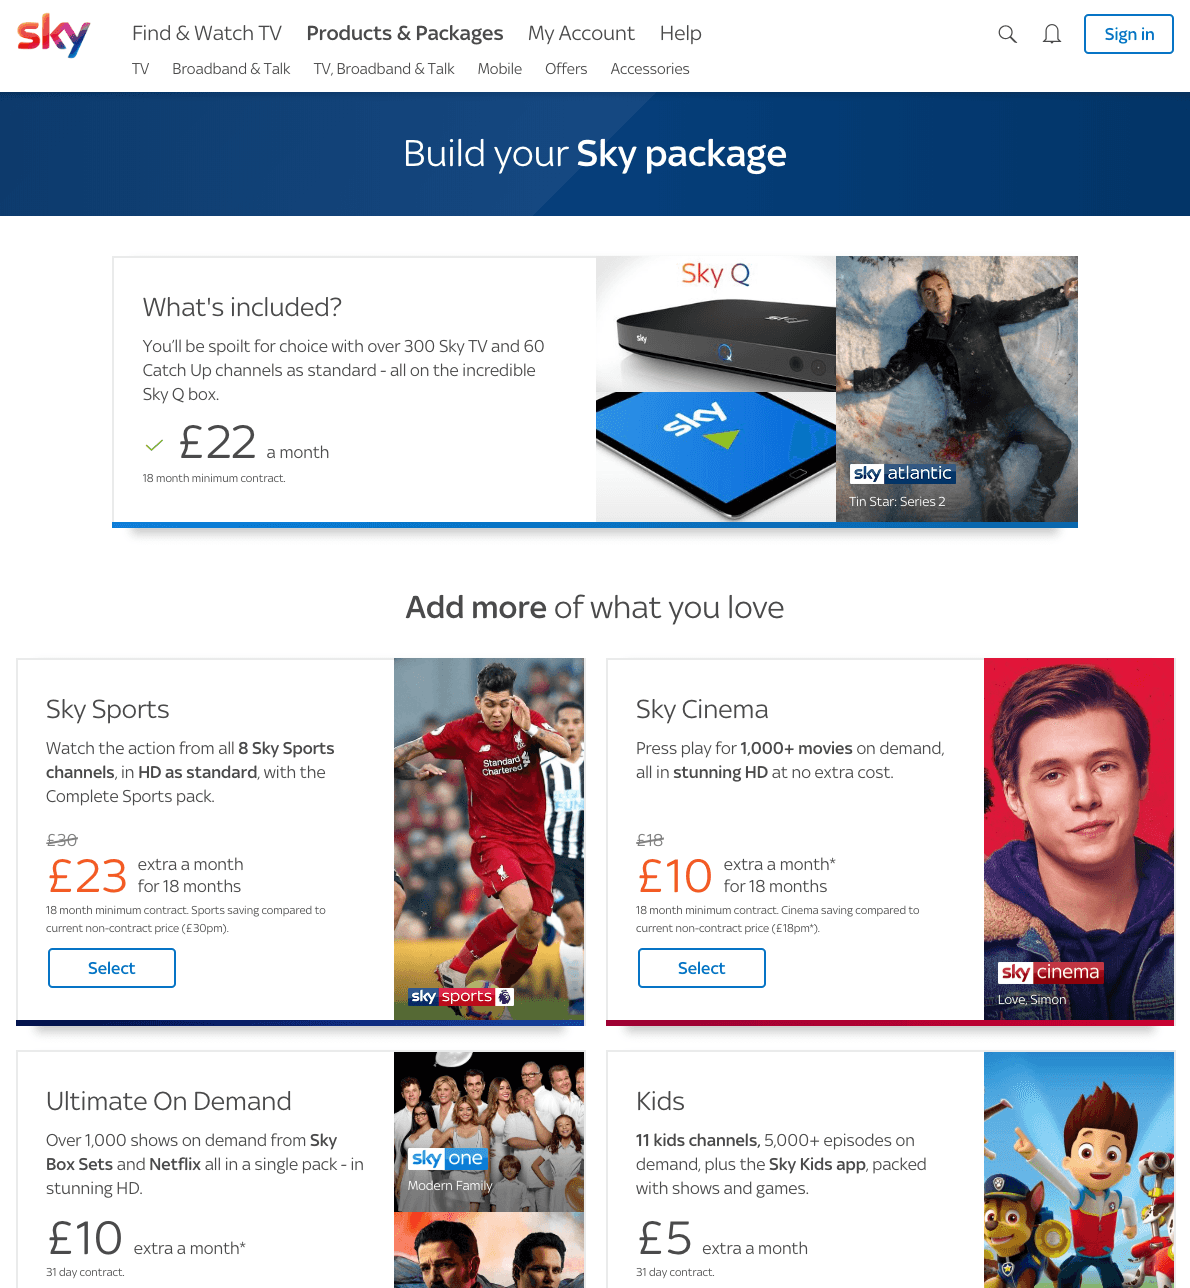 Sky Upselling Packages